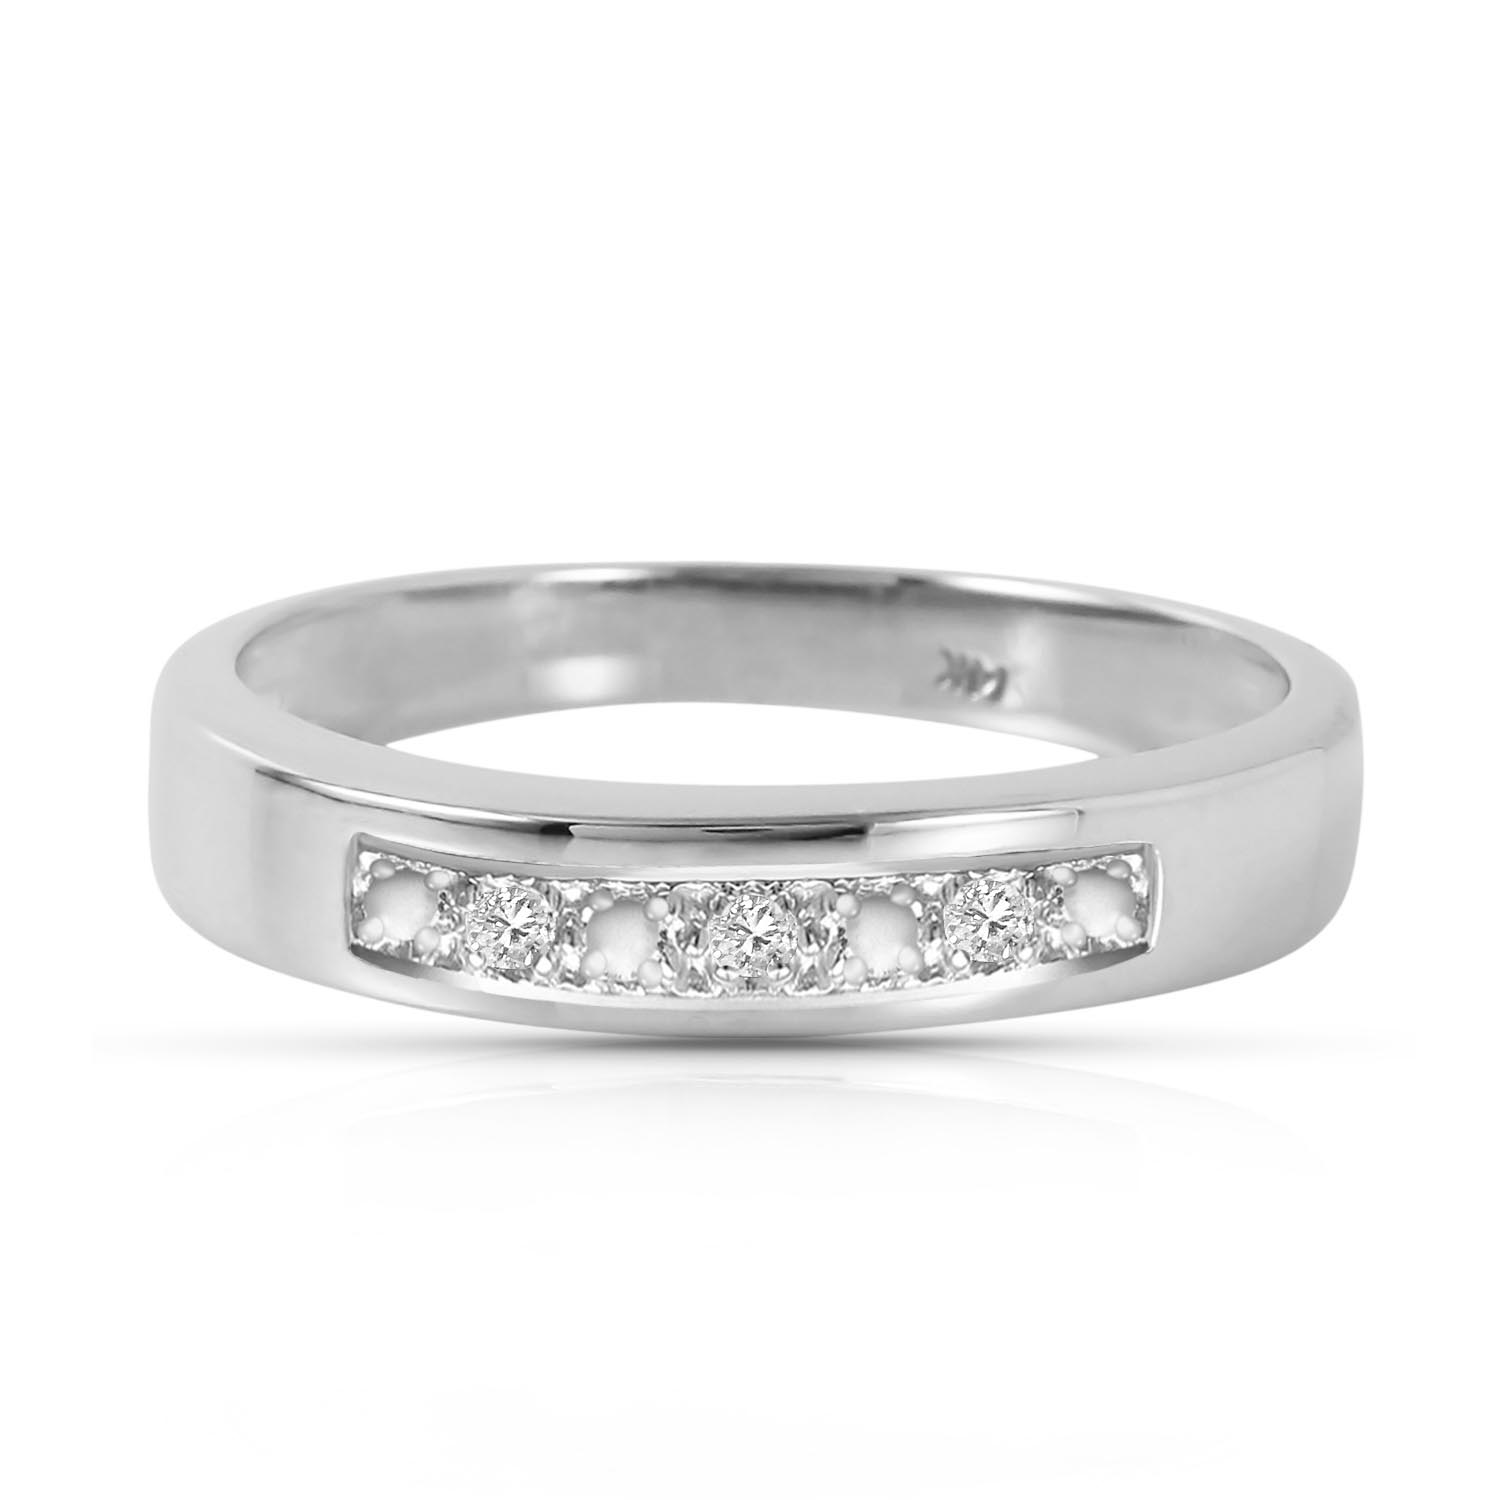 Round Cut Diamond Ring 0.02 ctw in 18ct White Gold